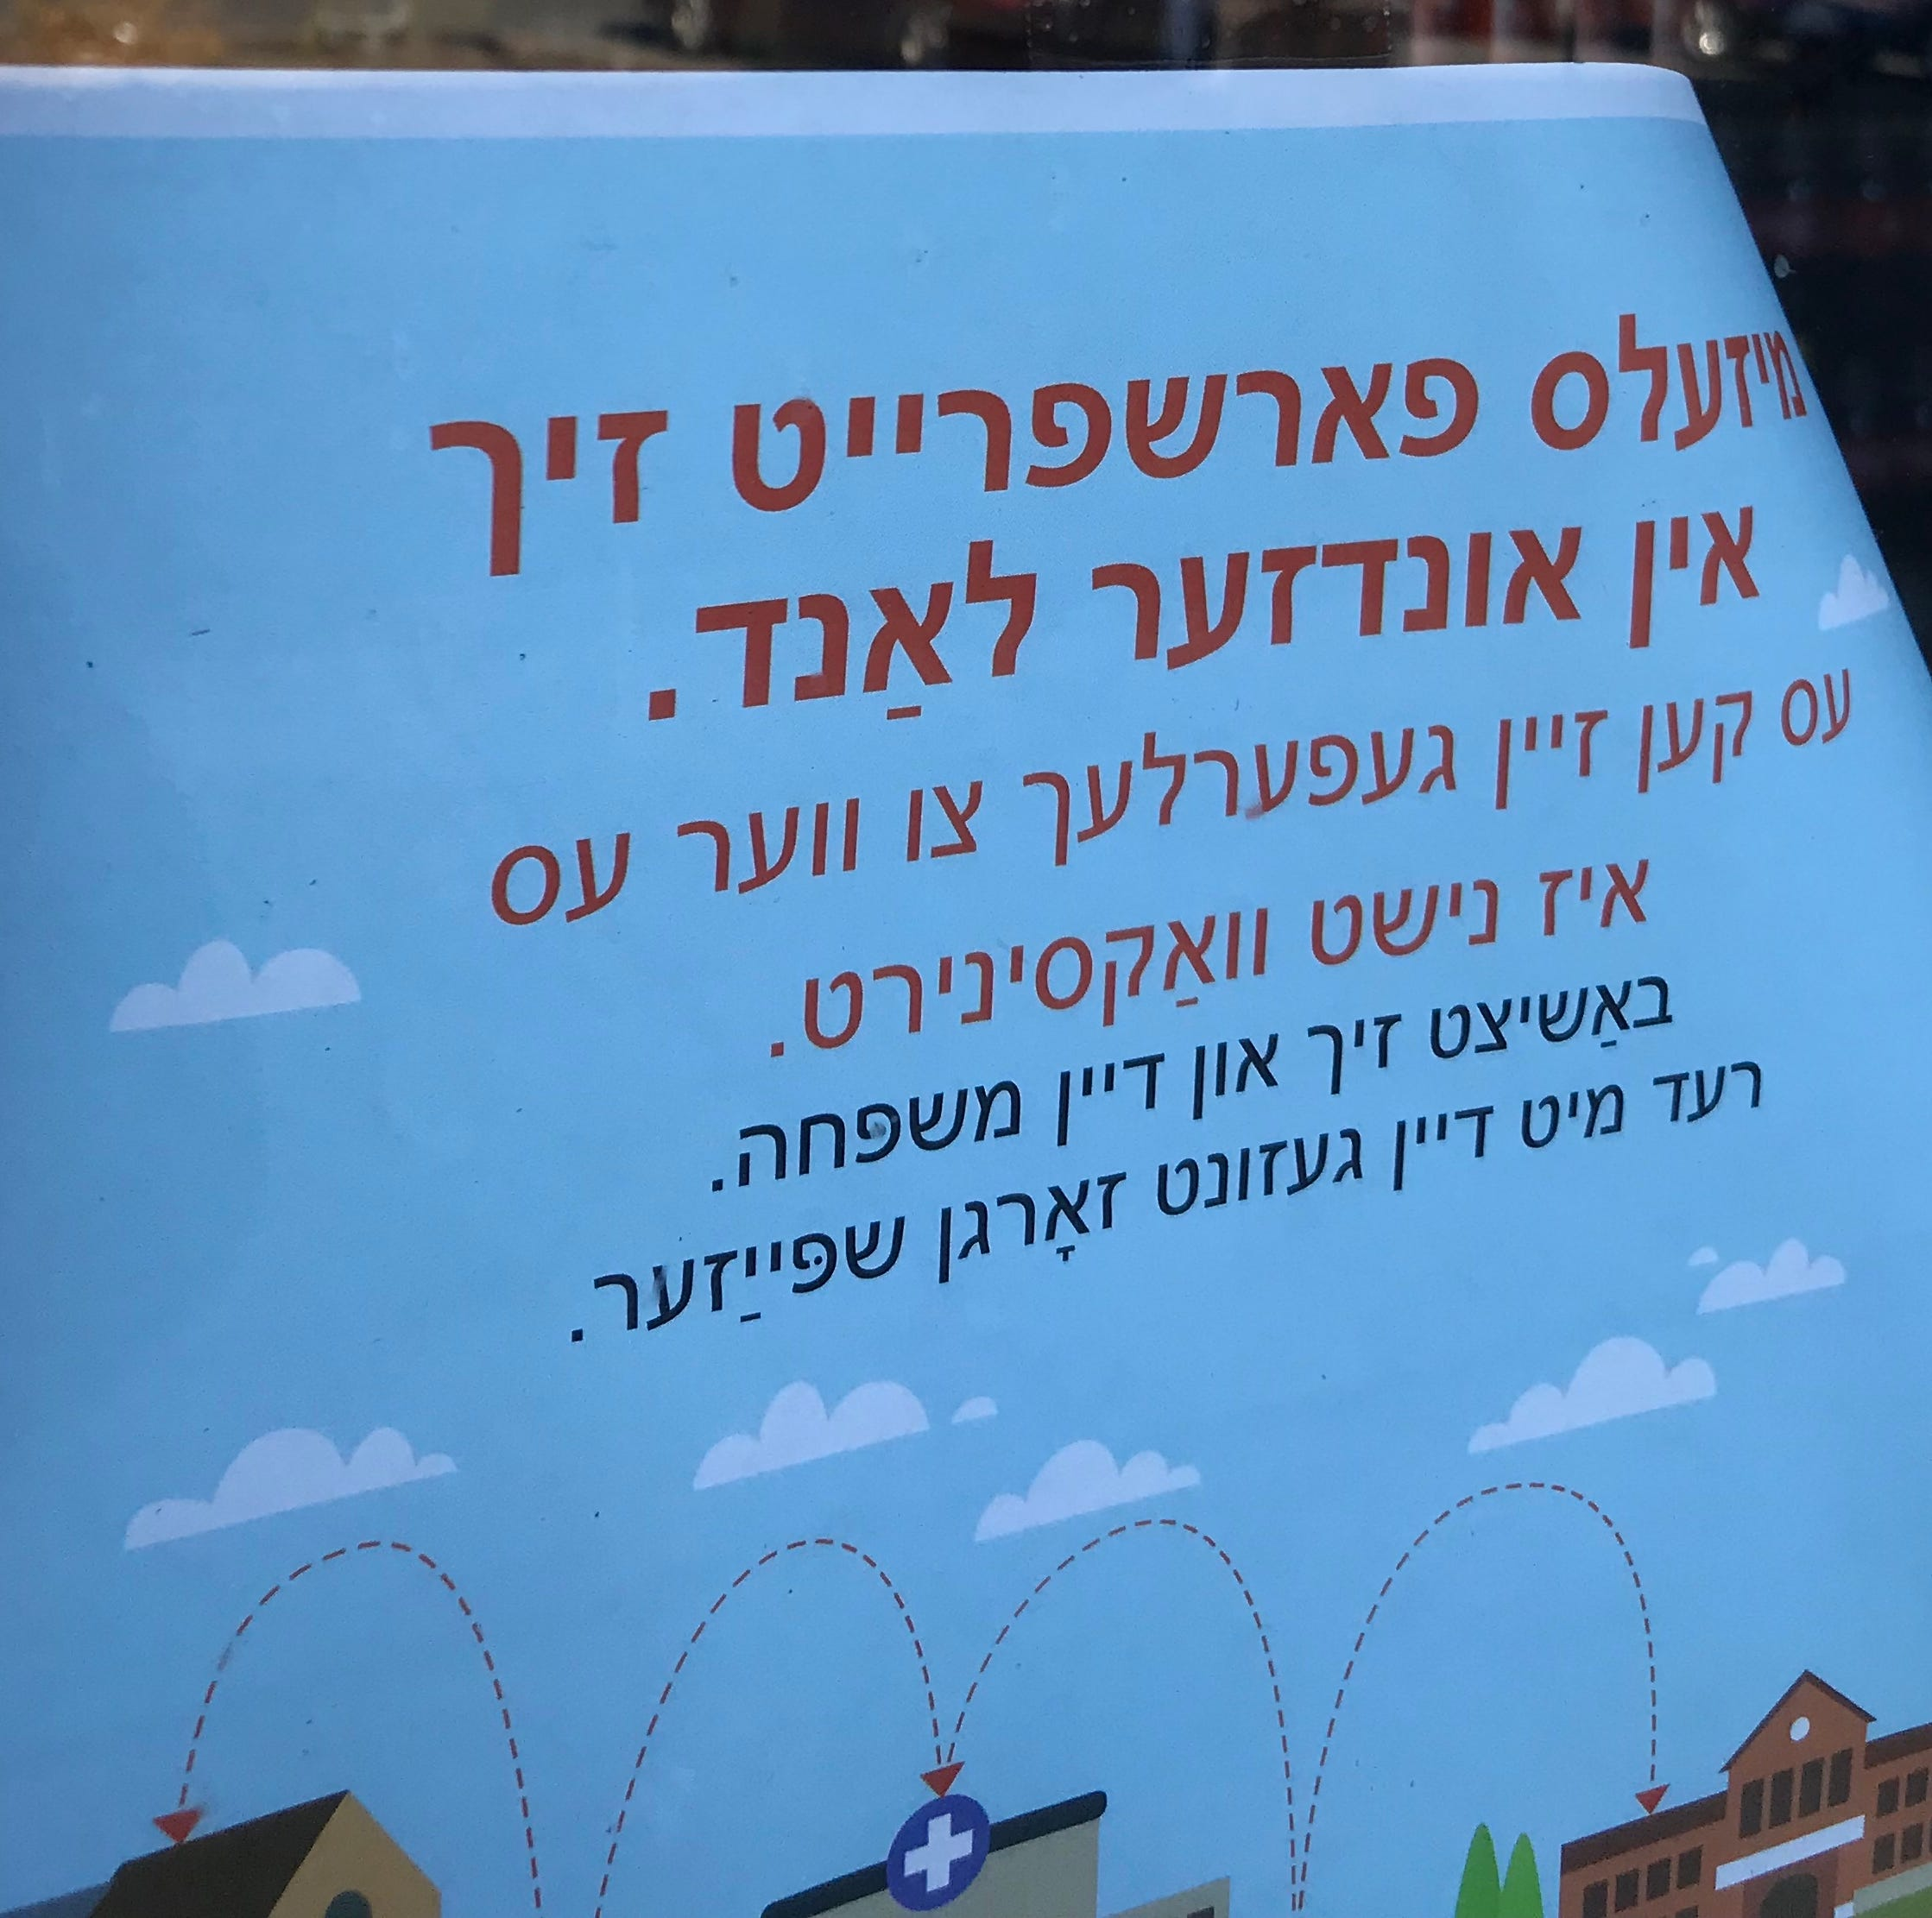 As Passover approaches, Jewish leaders warn that measles outbreak feeds anti-Semitism